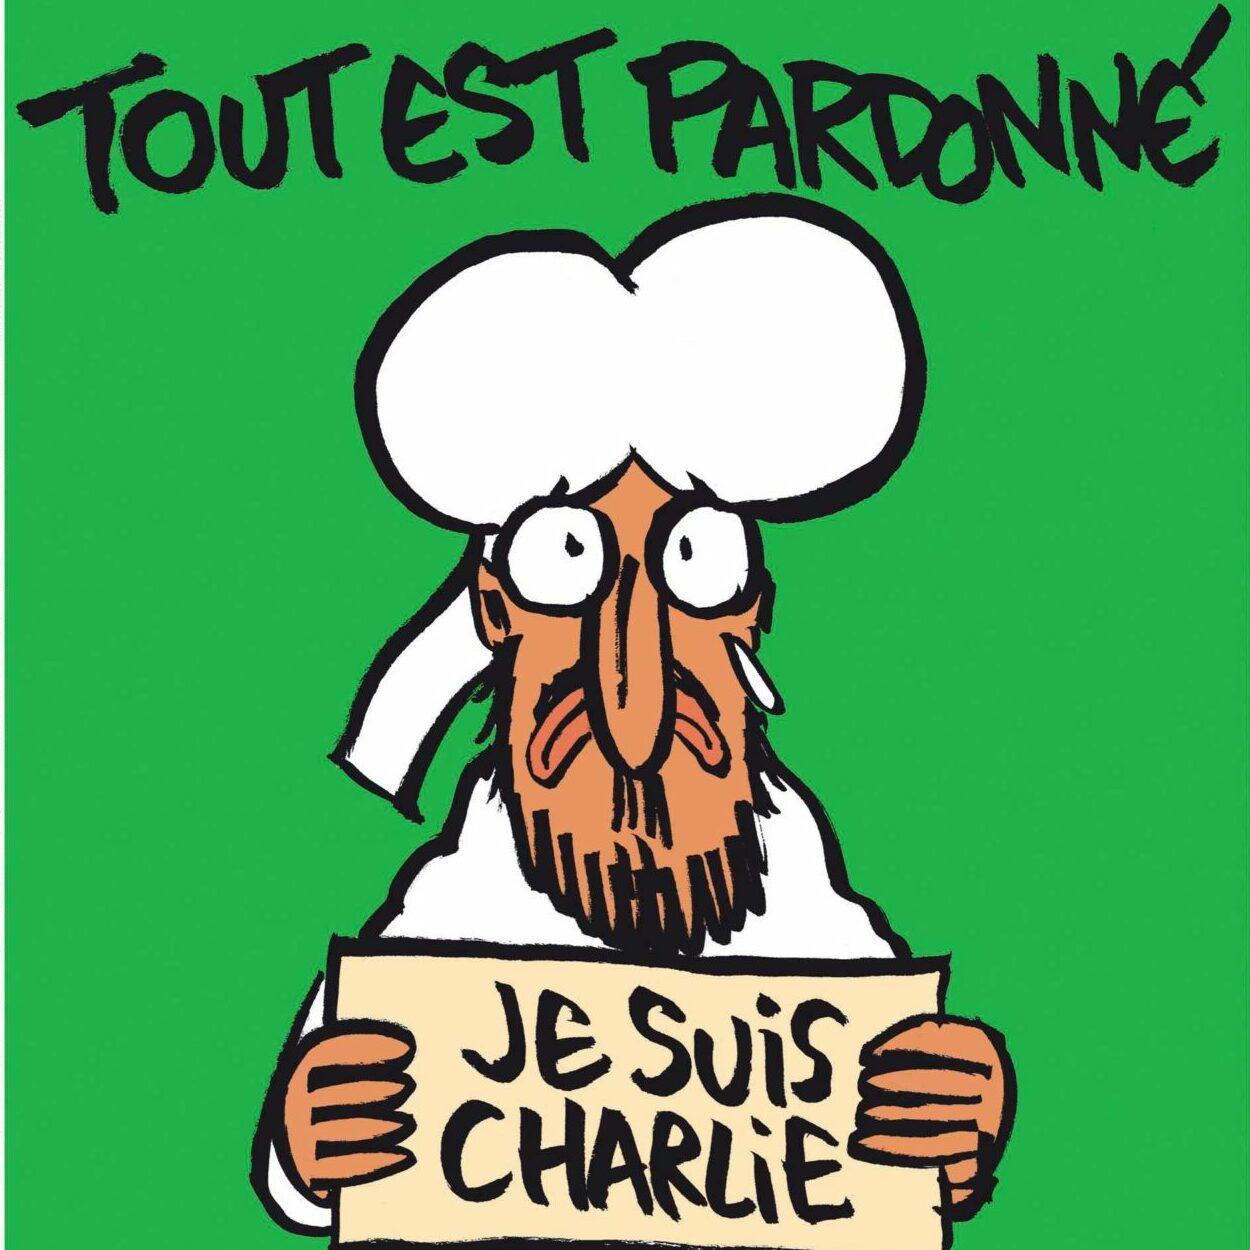 charlie hebdo republica charges